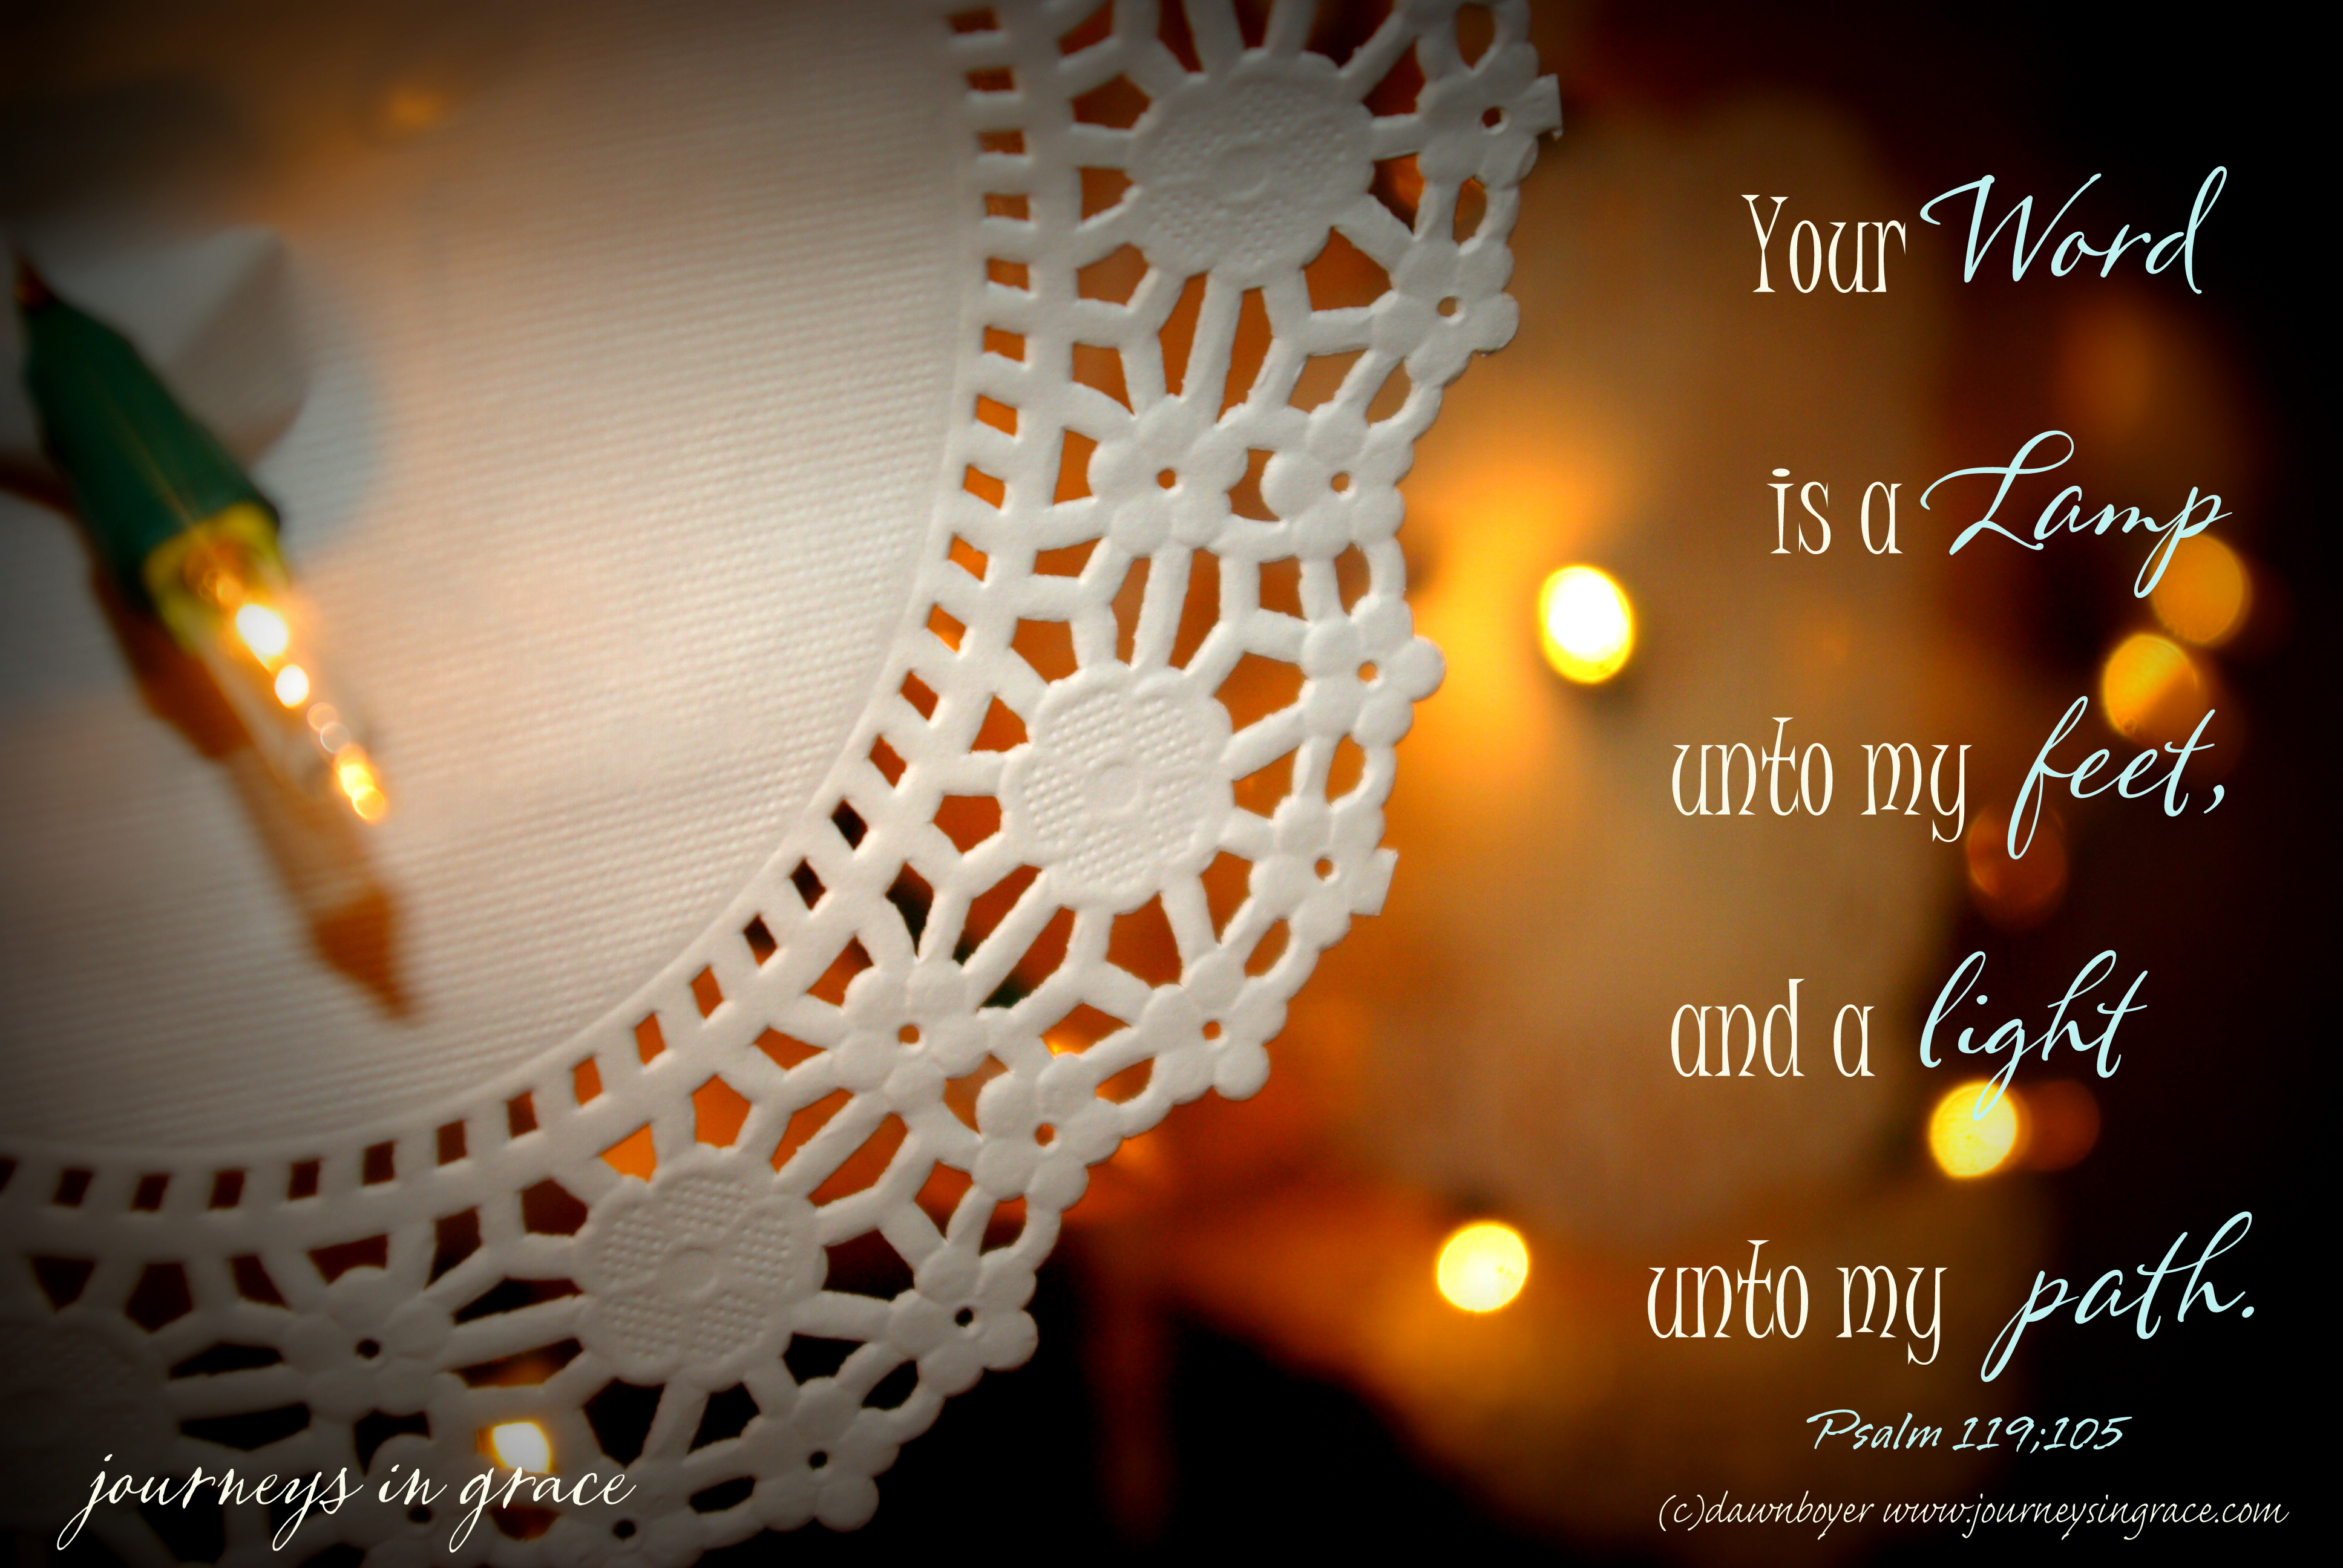 Your Word Is A Lamp That Lights My Path